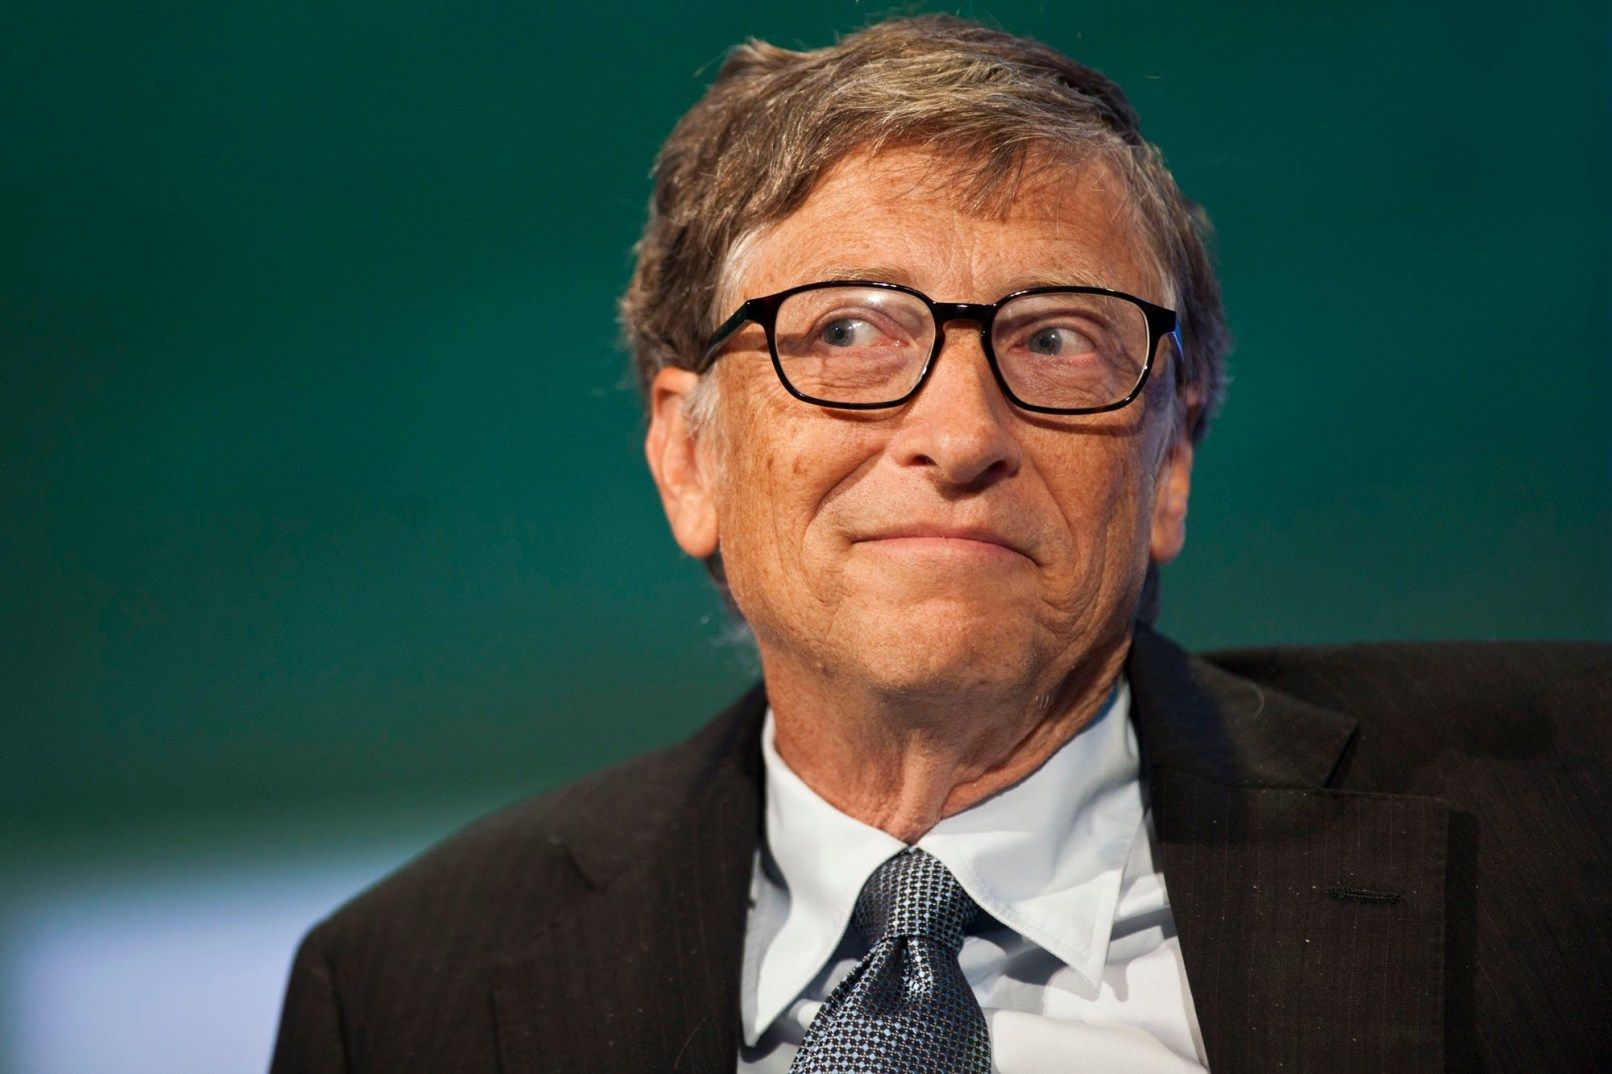 How Much Money Does Bill Gates Make Per Second